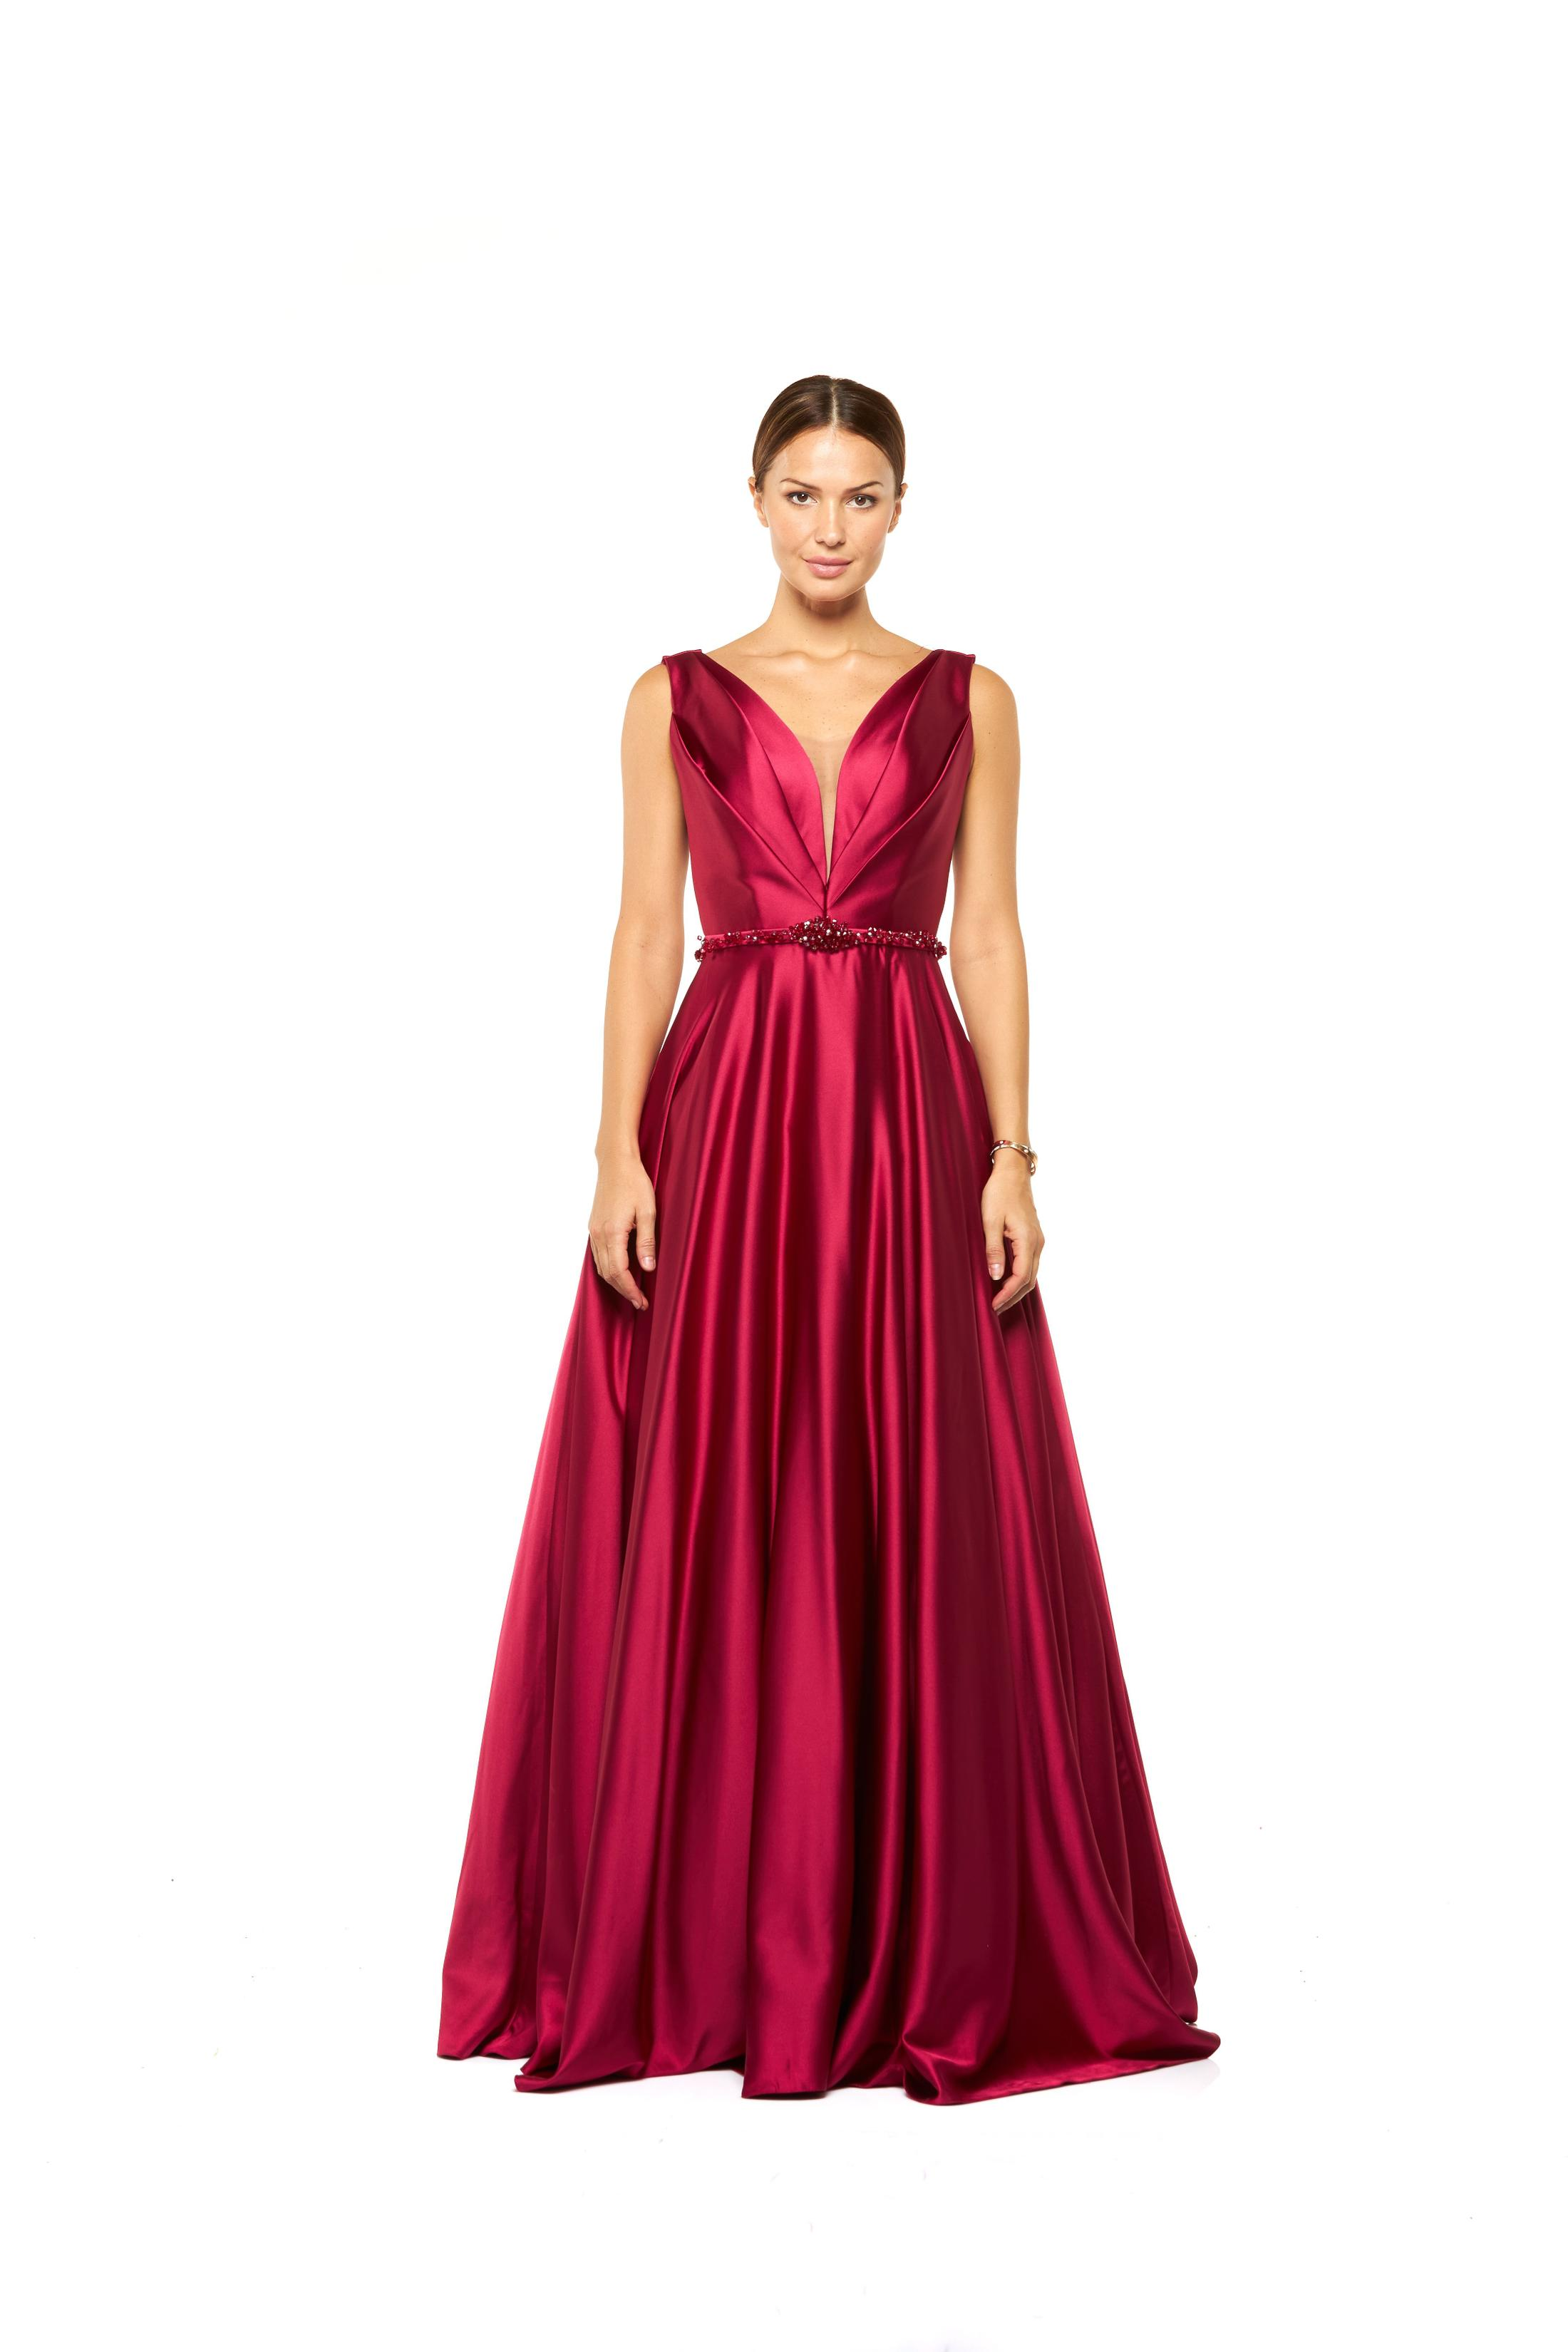 Crossover Satin Gown with beaded belt - Red